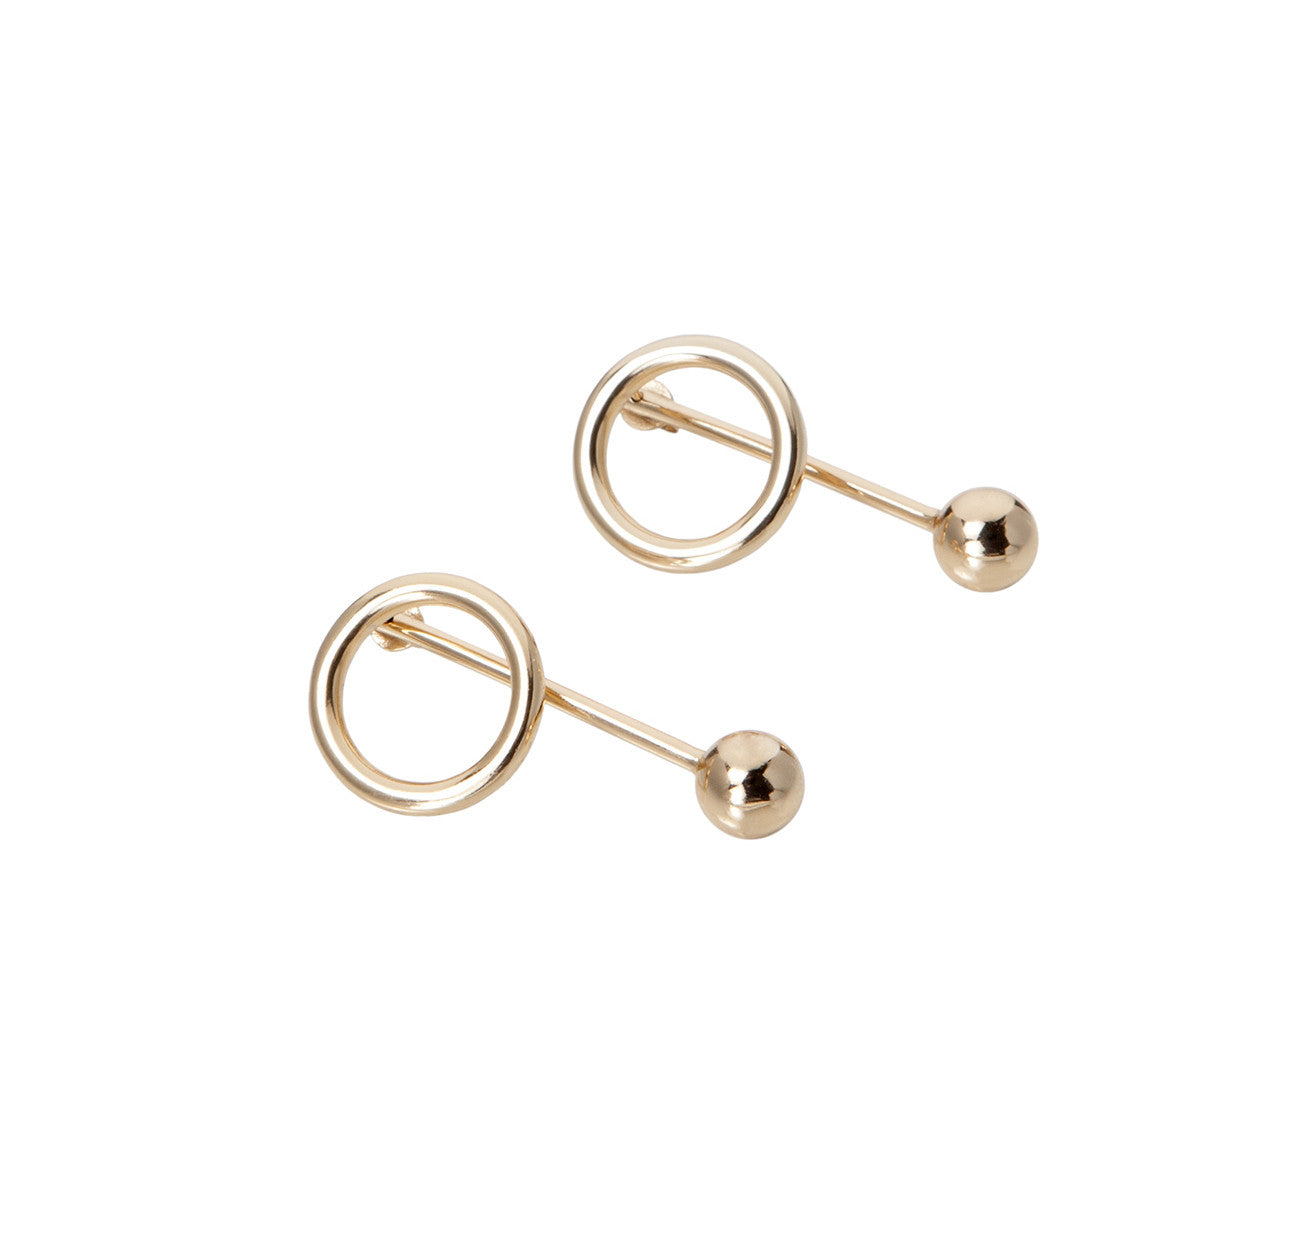 FRIENDS EARRINGS GOLD